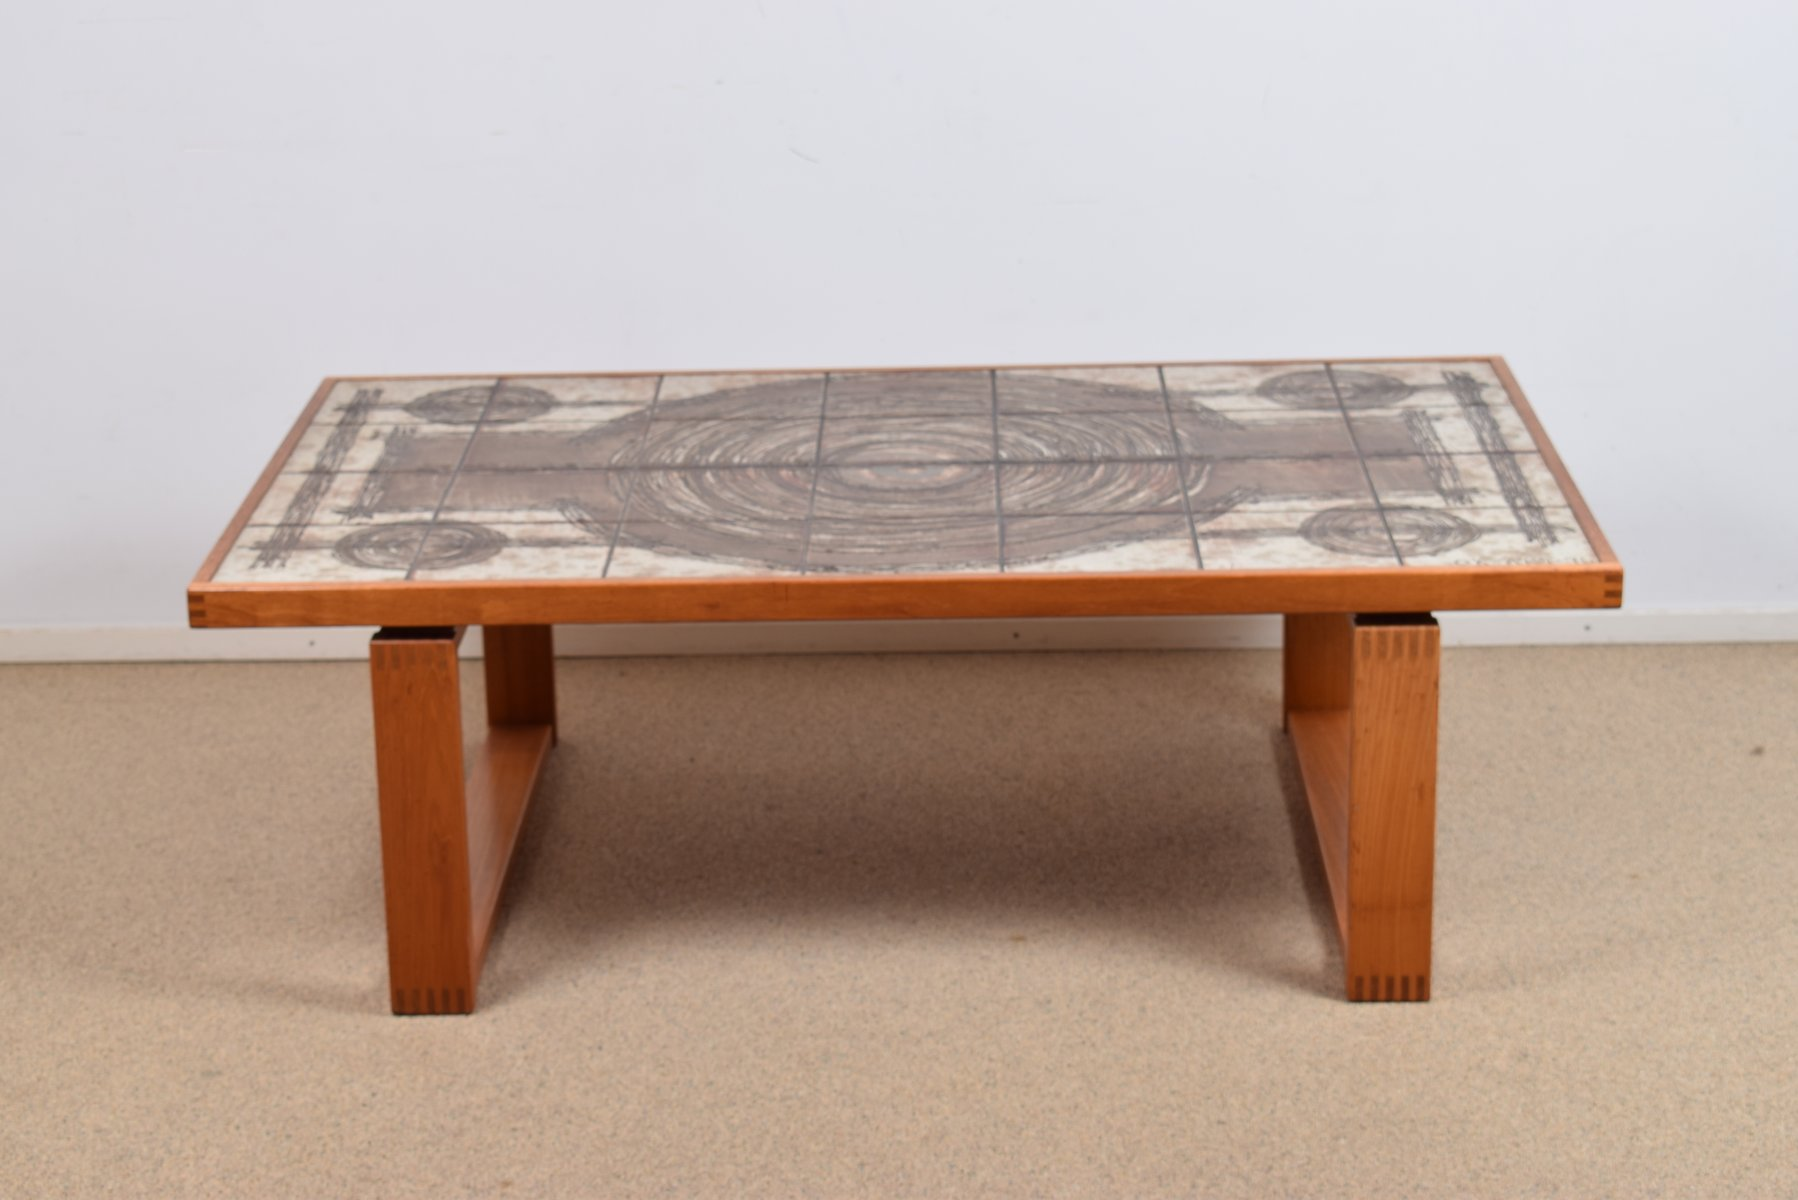 tile coffee table by ox art 1970s